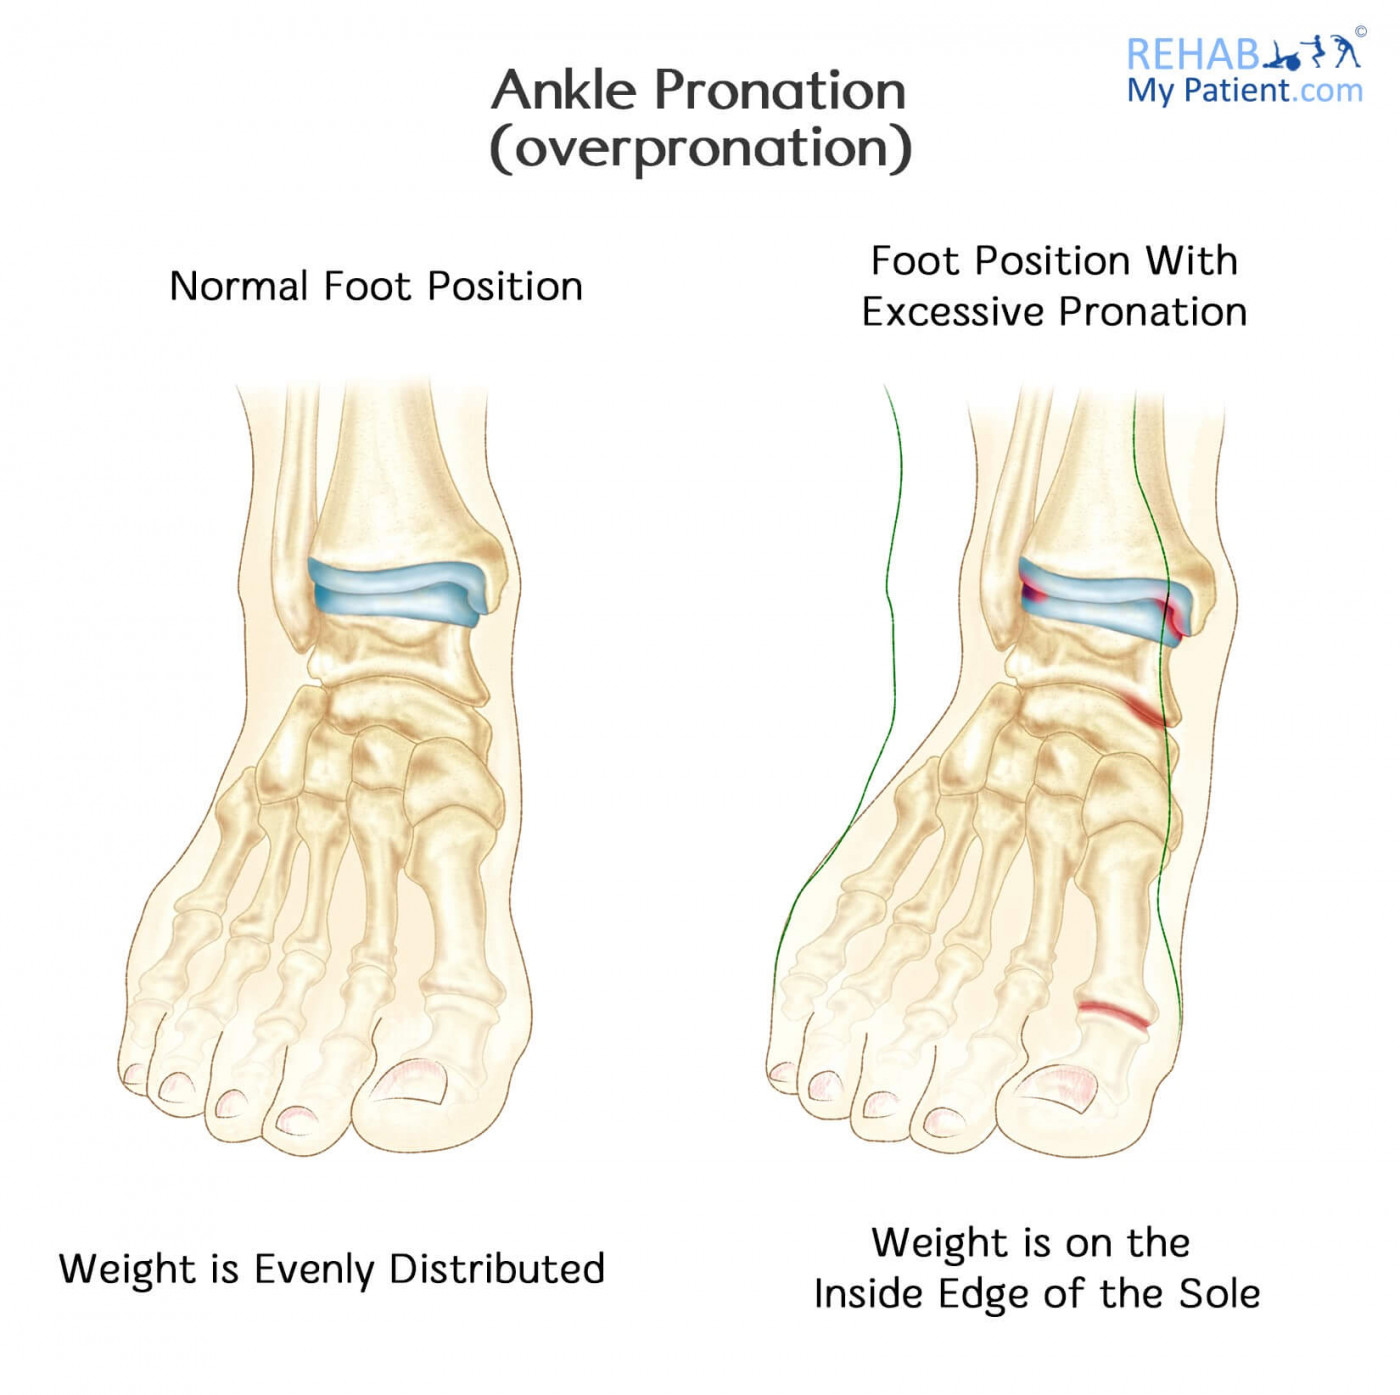 Ankle Pronation Overpronation Rehab My Patient